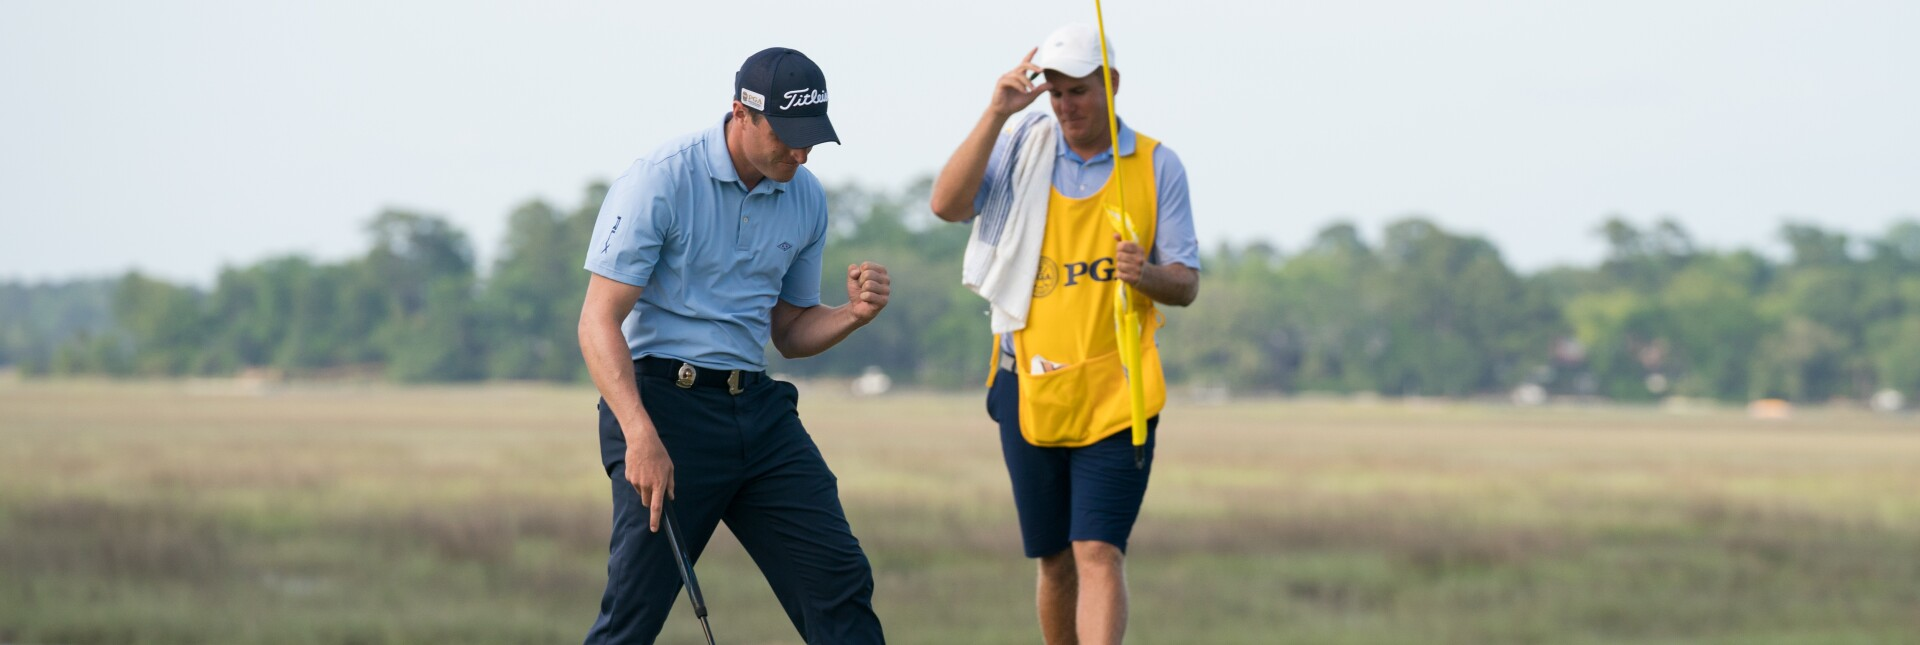 Alex Beach reacts to draining a putt during the 2019 PGA Professional Championship